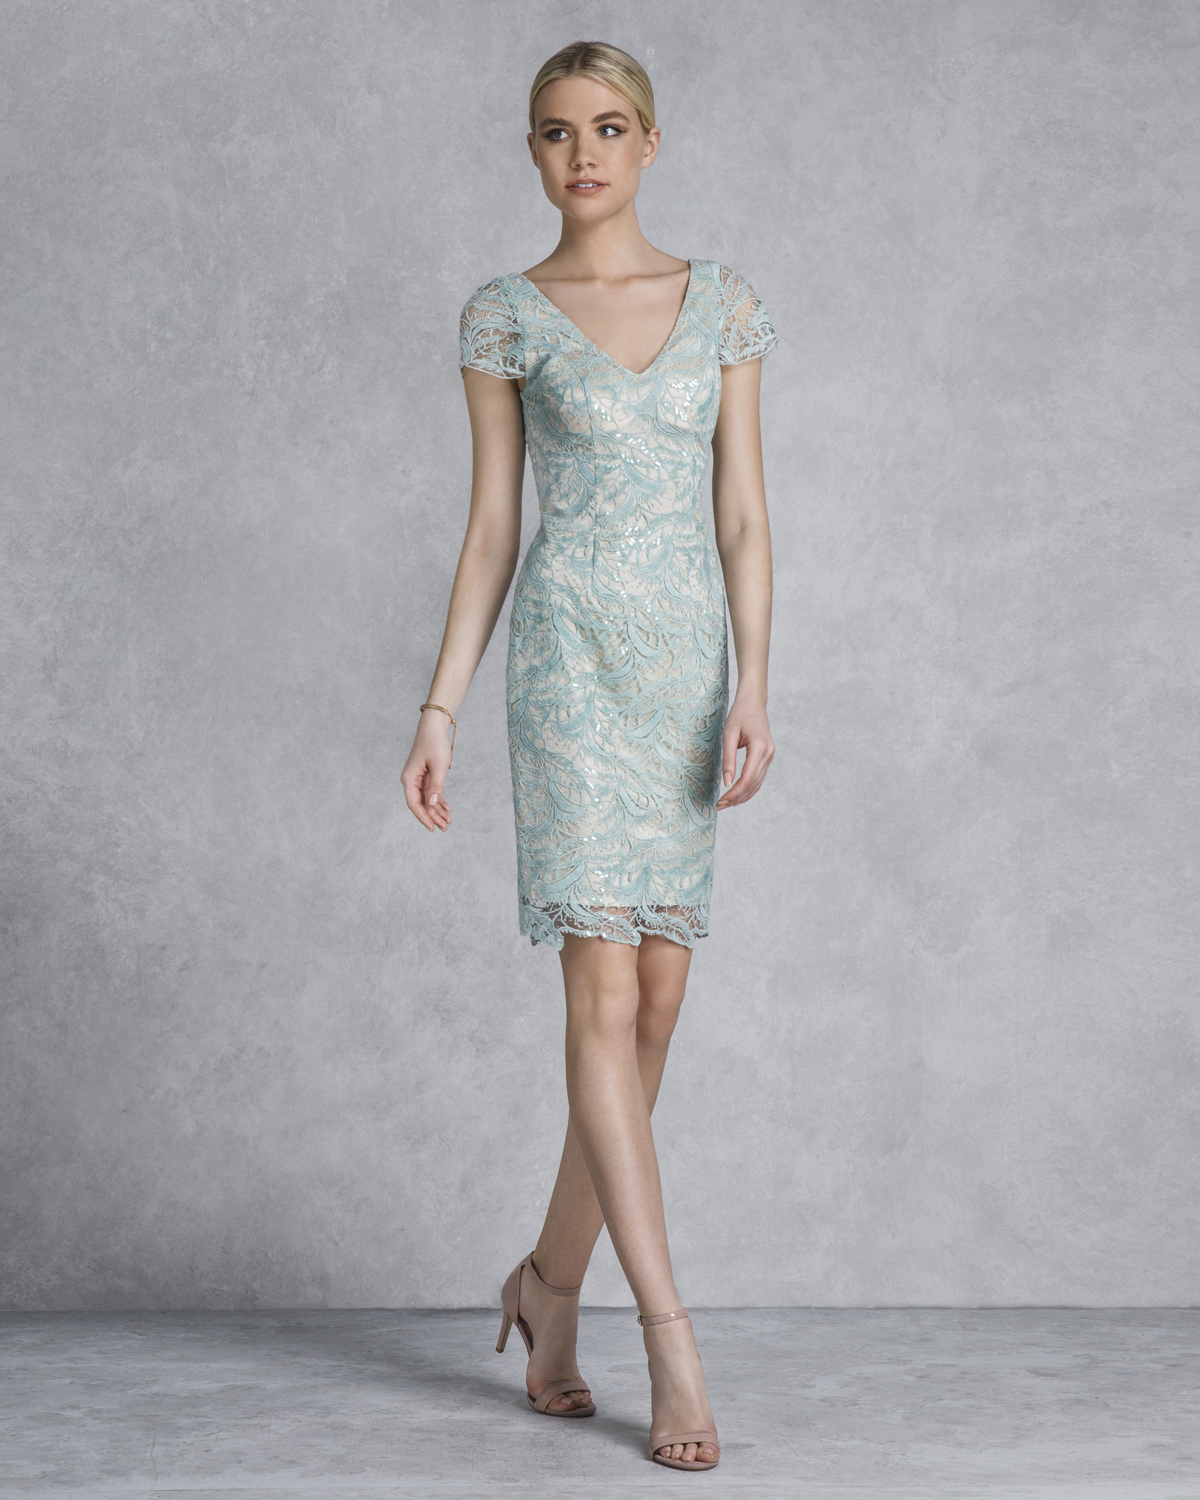 Classic Dresses / Short evening lace dress with sleeves